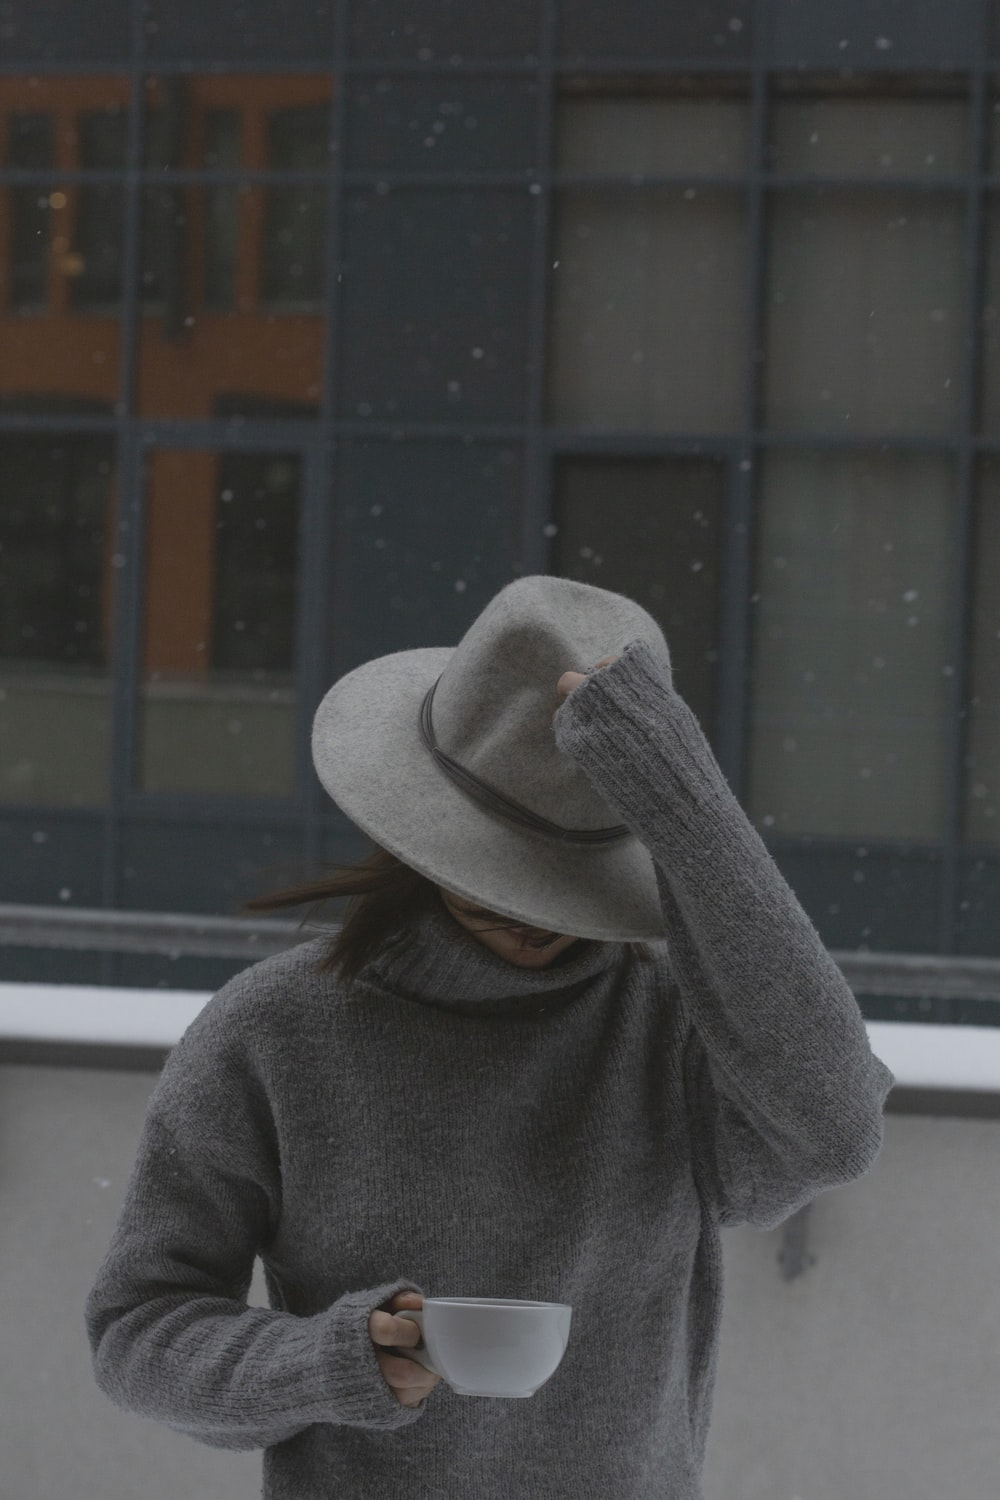 person in gray sweater wearing gray knit cap